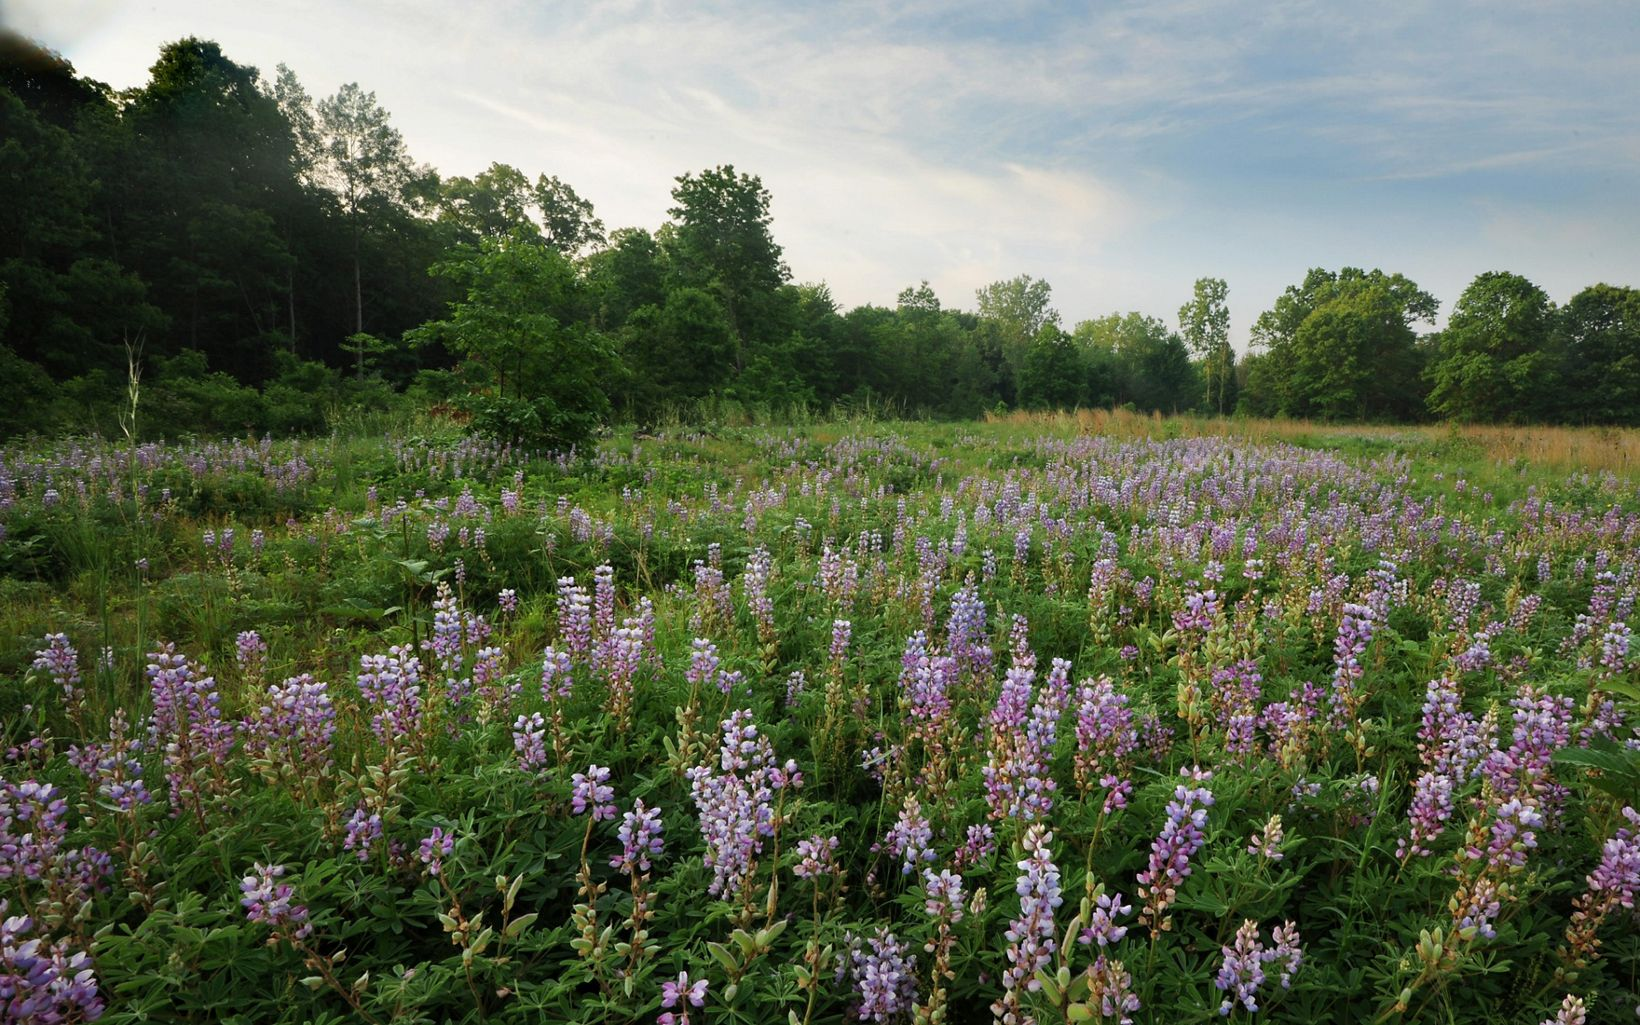 An open field covered with green foliage and purple spikes of flowers.